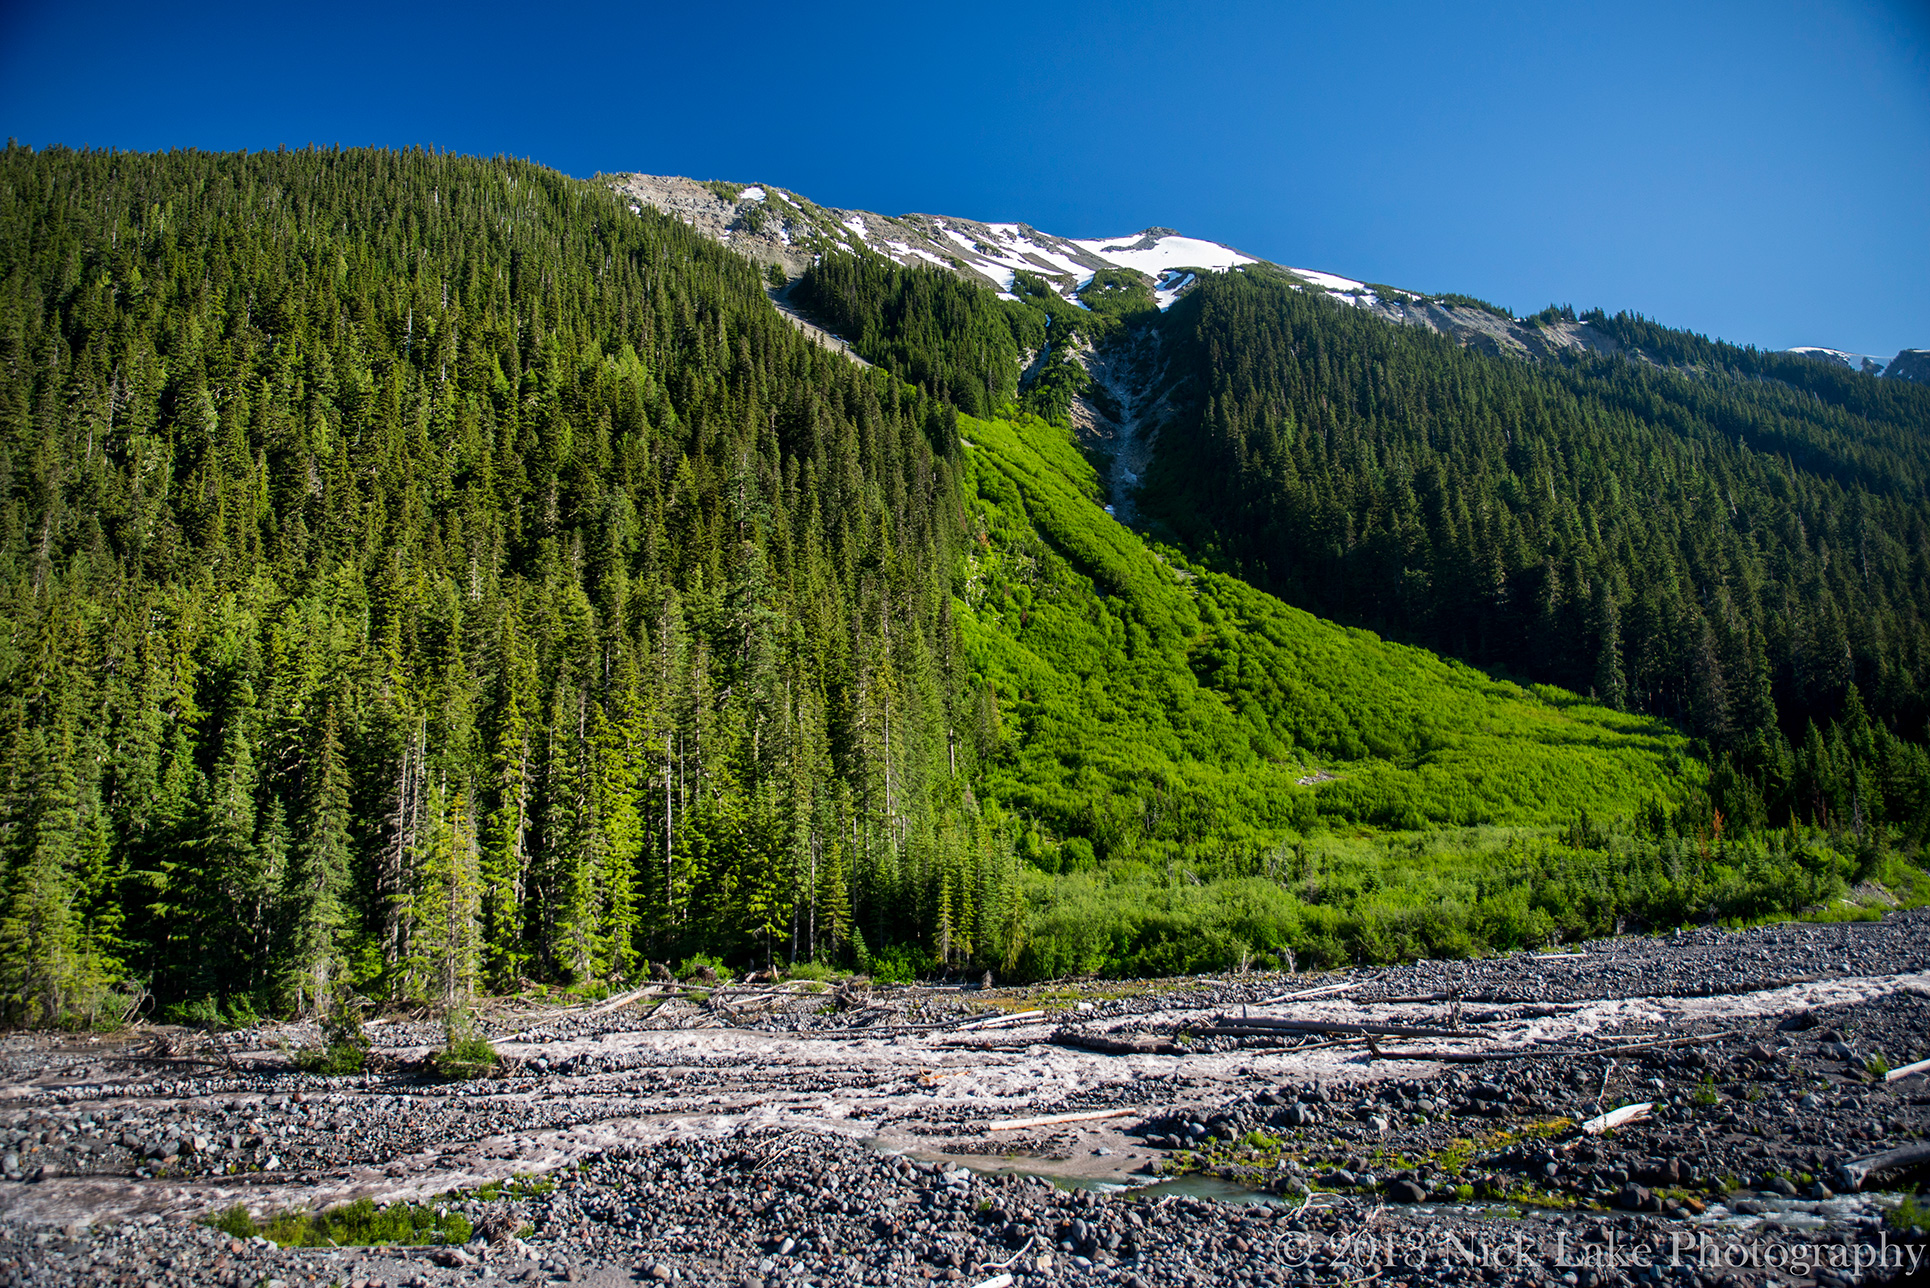 A long, slender ridge approaches the summit of Mt. Rainier above White River